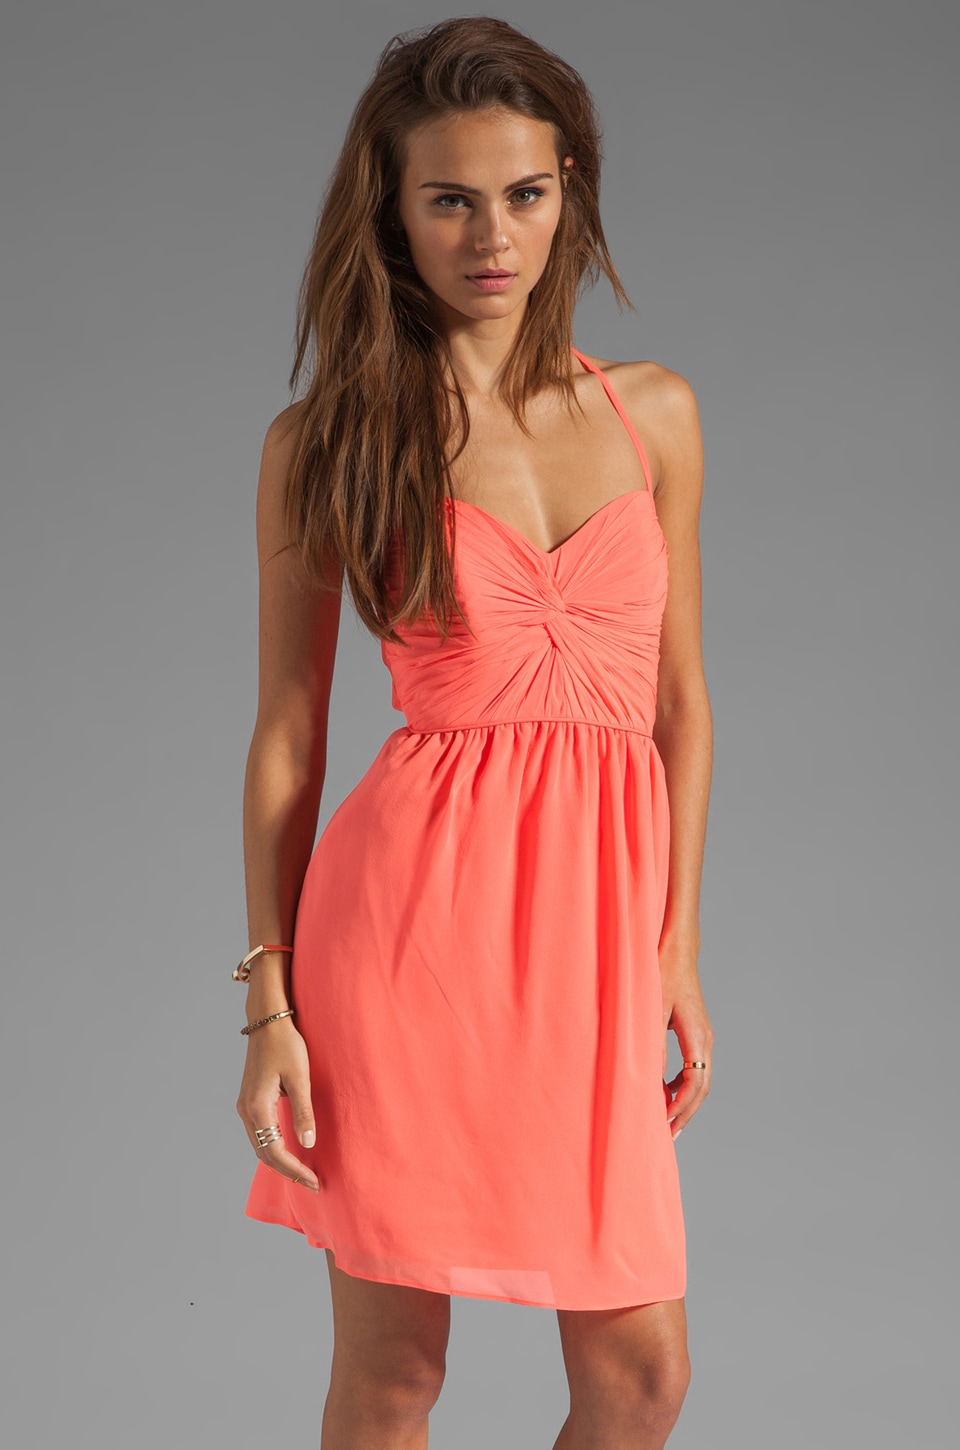 Shoshanna Carine Dress in Neon Peach